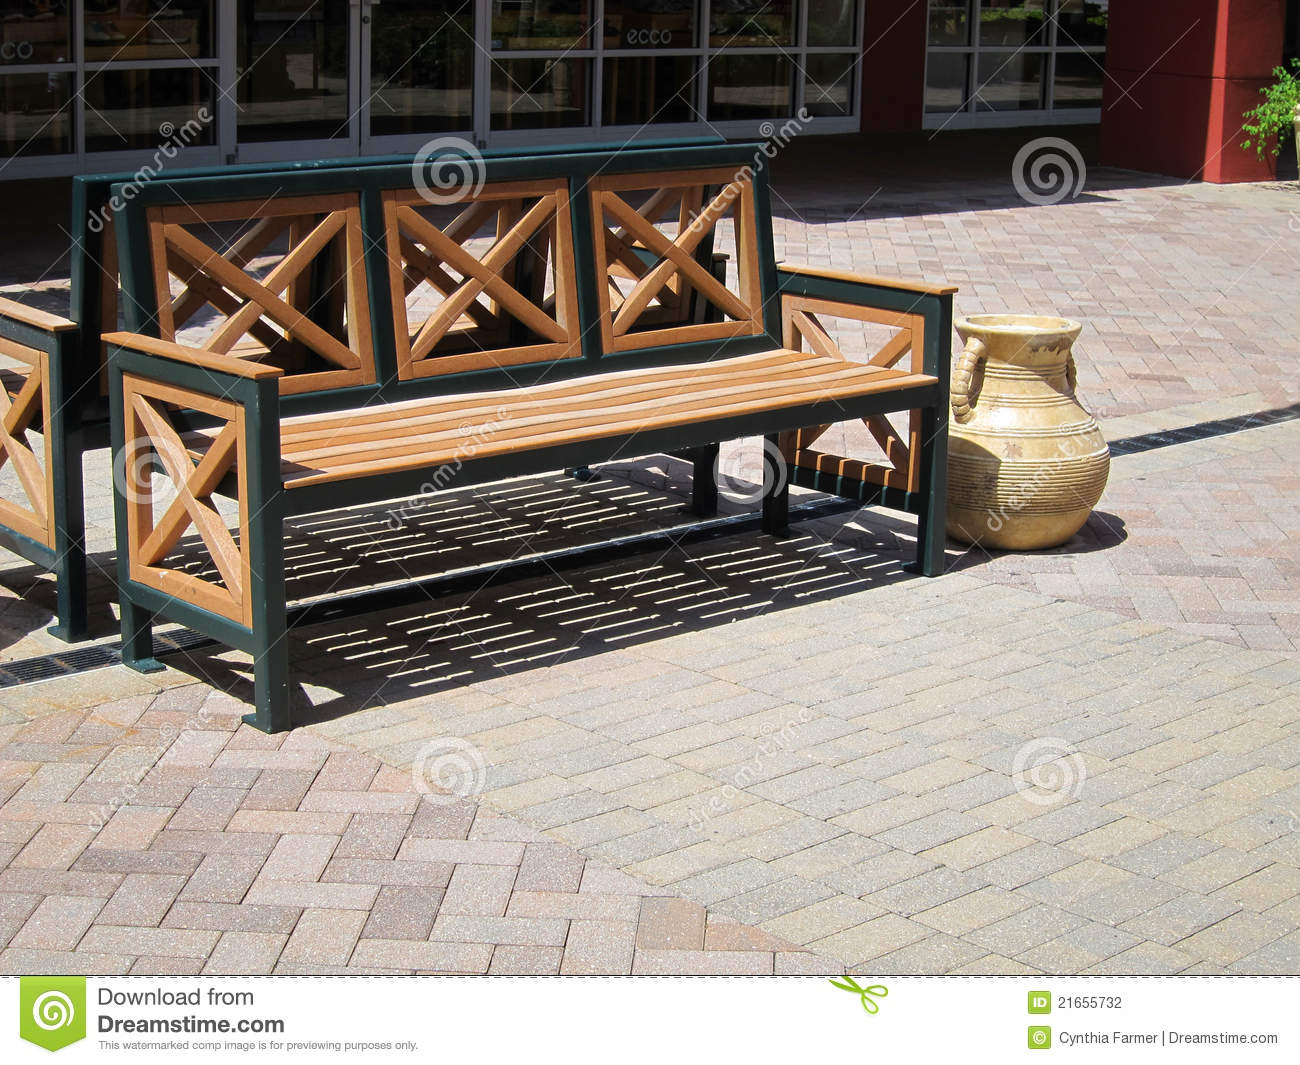 Outdoor Wooden Bench Stock graphy Image